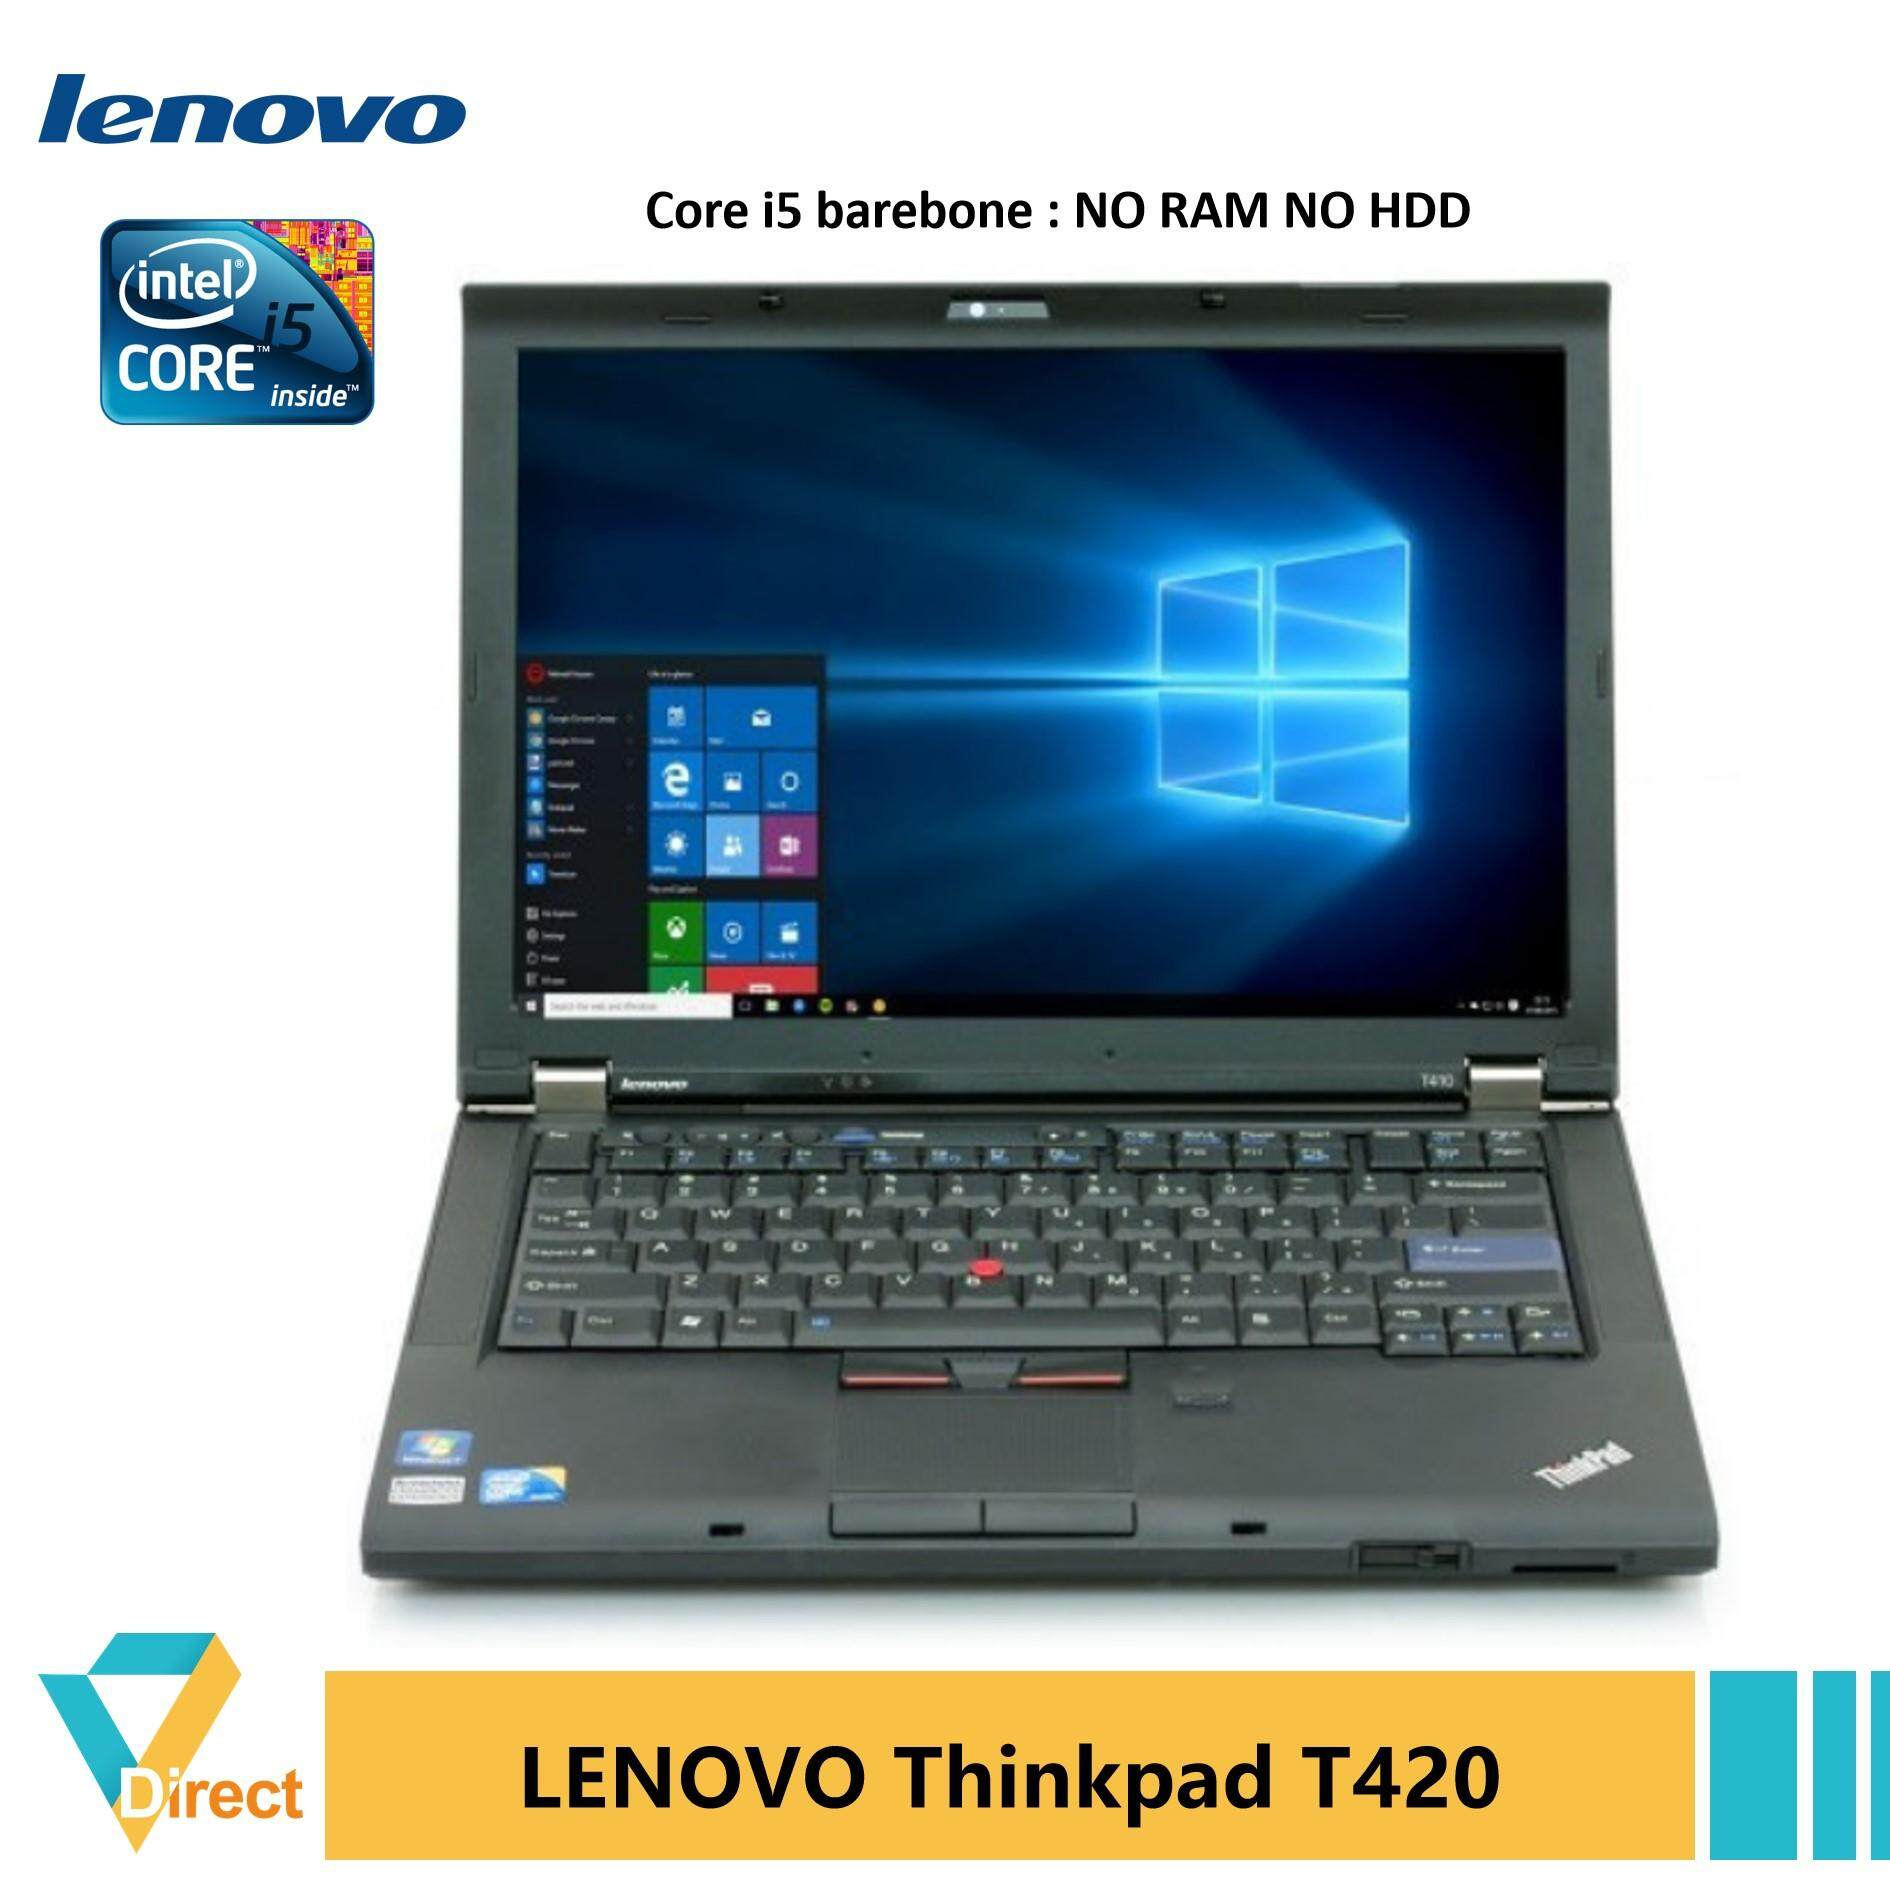 Up to 16GB RAM 1TB SSD Thinkpad T420 laptop PC Core i5 also 4GB 8GB 240GB 480GB SSD, 500GB HDD Malaysia